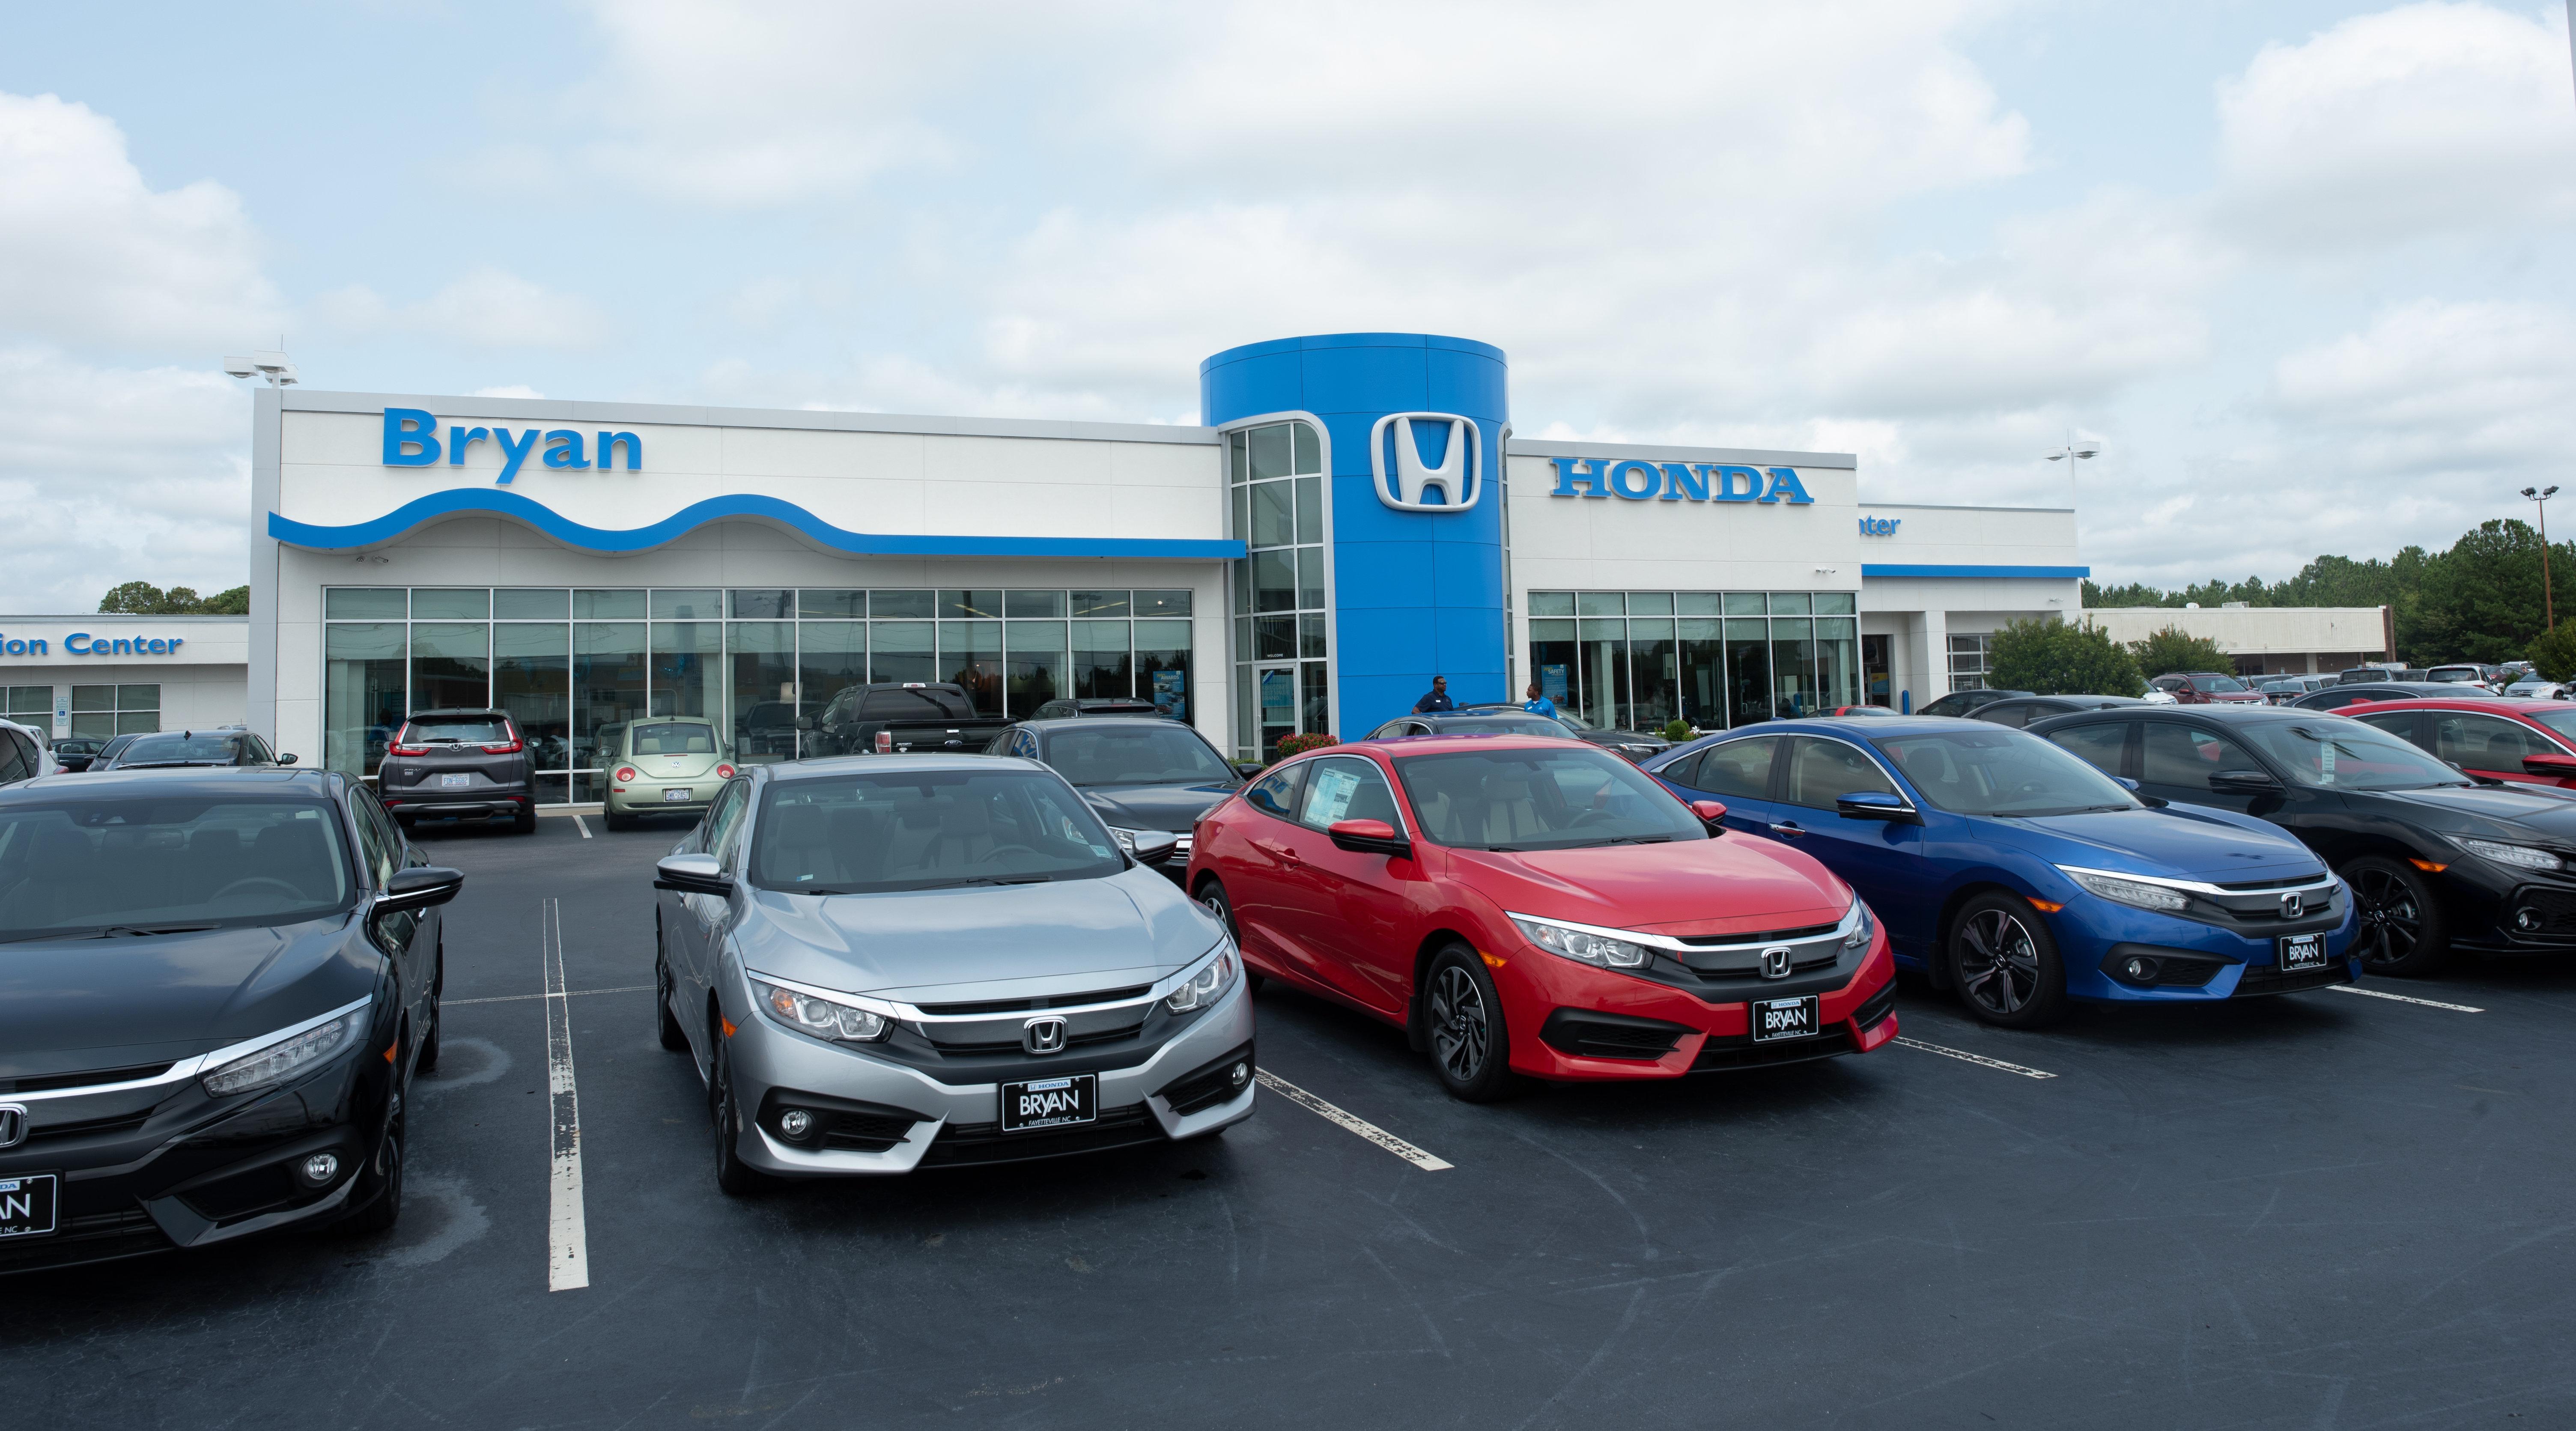 Exterior of Bryan Honda Dealership